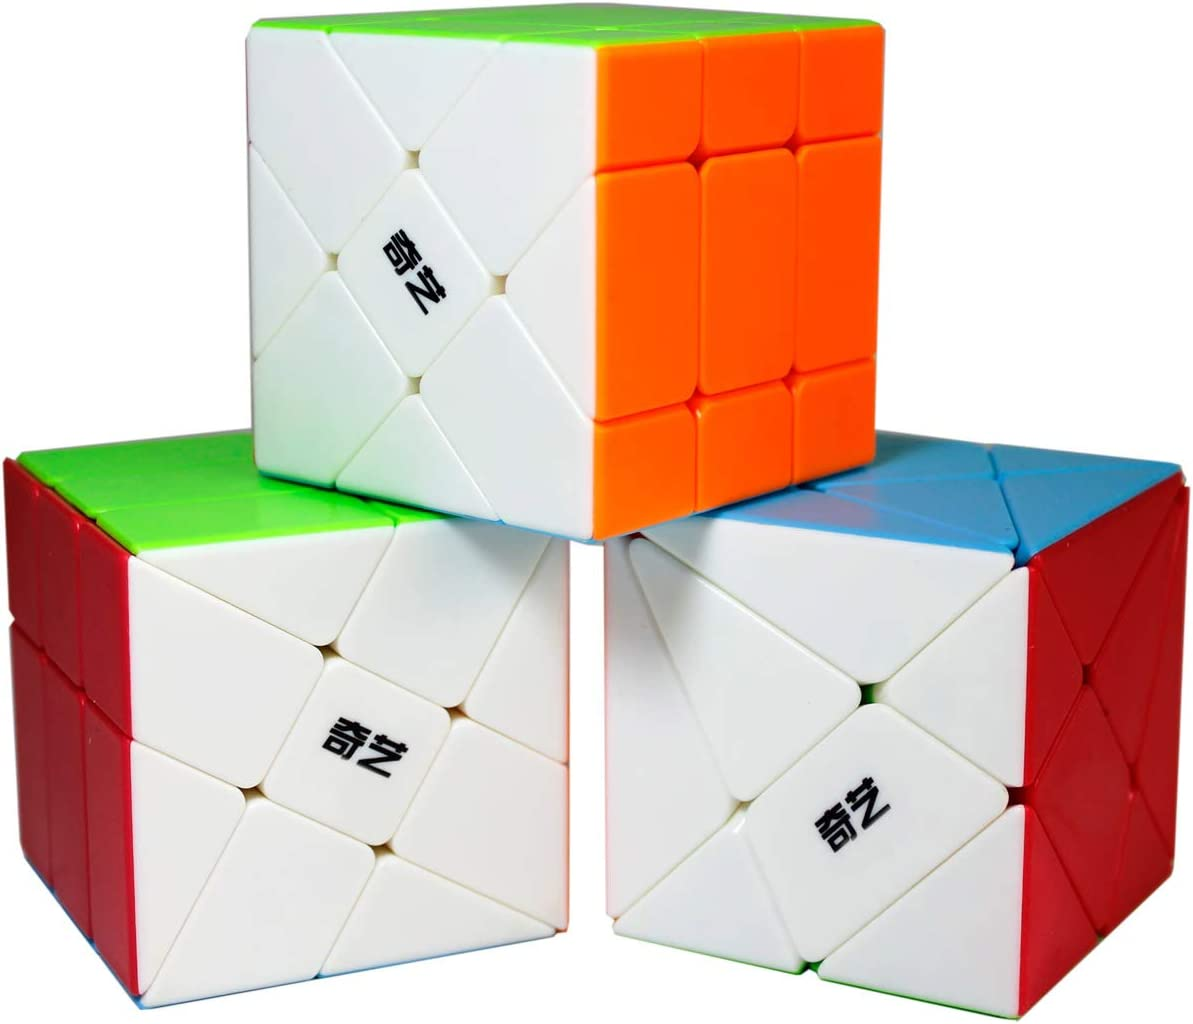 OJIN Specific Cube Puzzle Sets-Pack de 3 (Incluye Cubo de 3X3 Fluctuation Angle Puzzle, Windmill Cube 2x3 Shape Mod, Fisher Cube 3x3x3 Shape Twisty Puzzle): Amazon.es: Juguetes y juegos